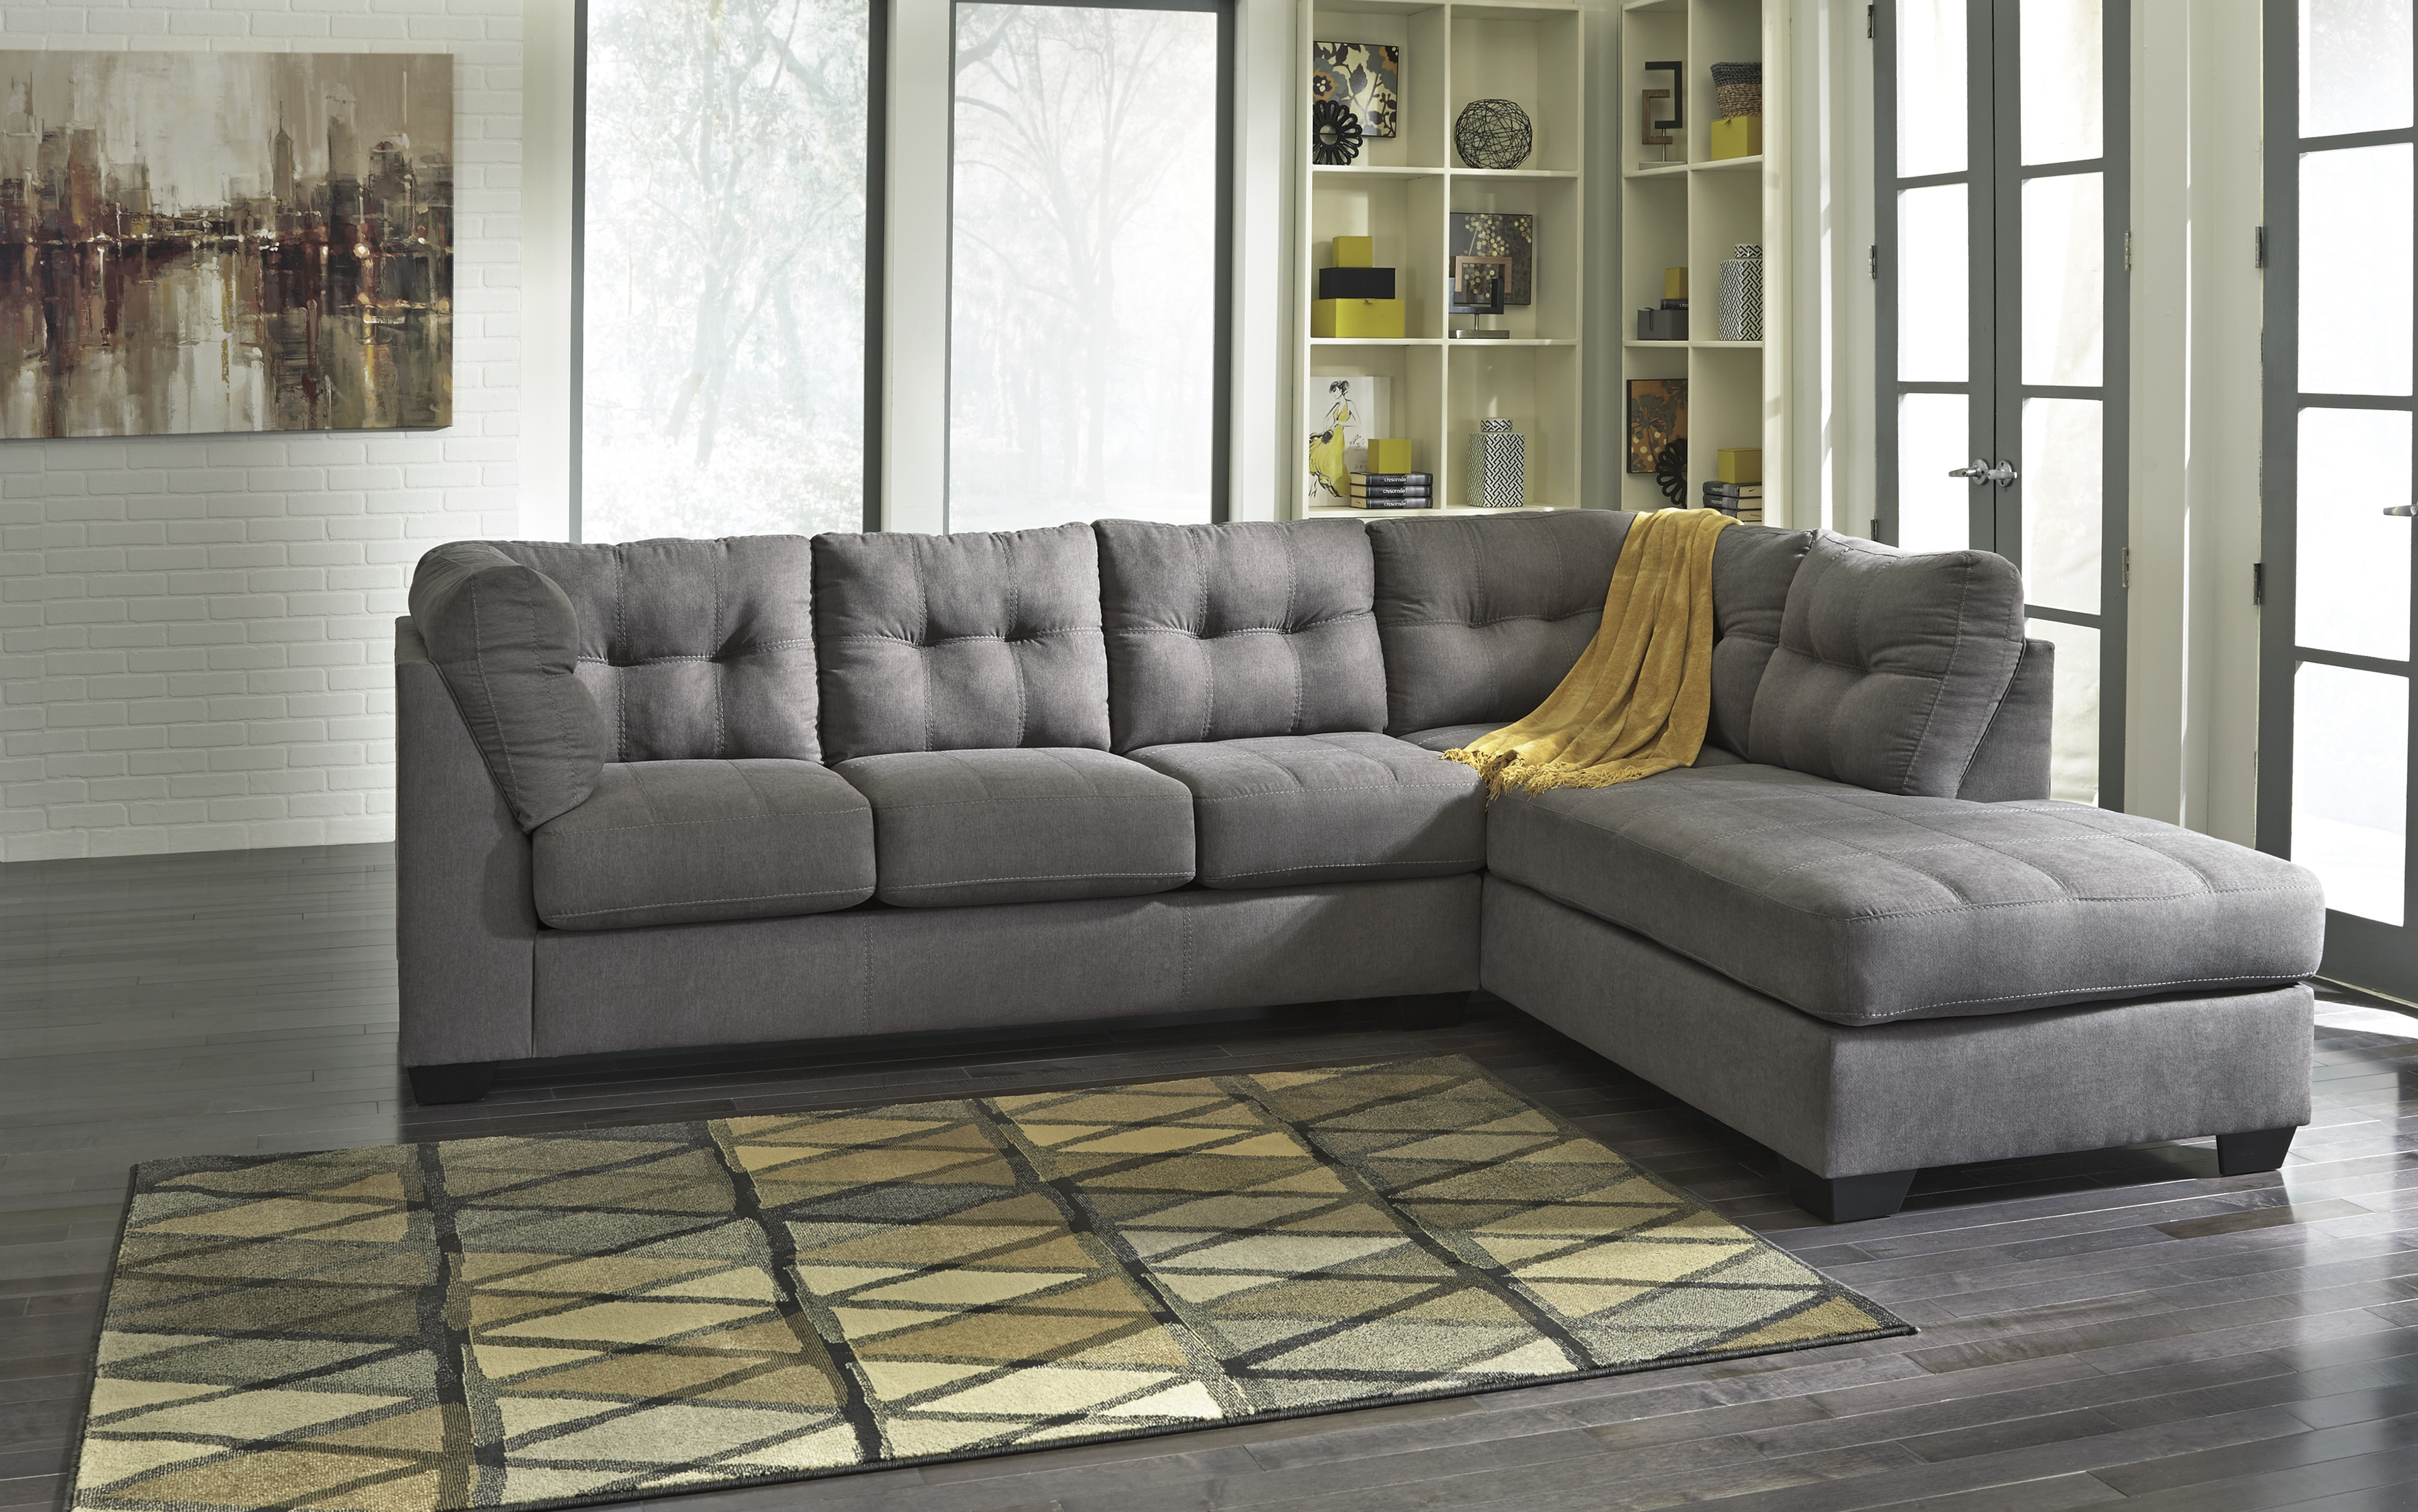 Couch: Best Gray Couch Ashley Furniture Standard Couch, Gray Couch With Regard To Well Known Ashley Tufted Sofas (View 6 of 15)